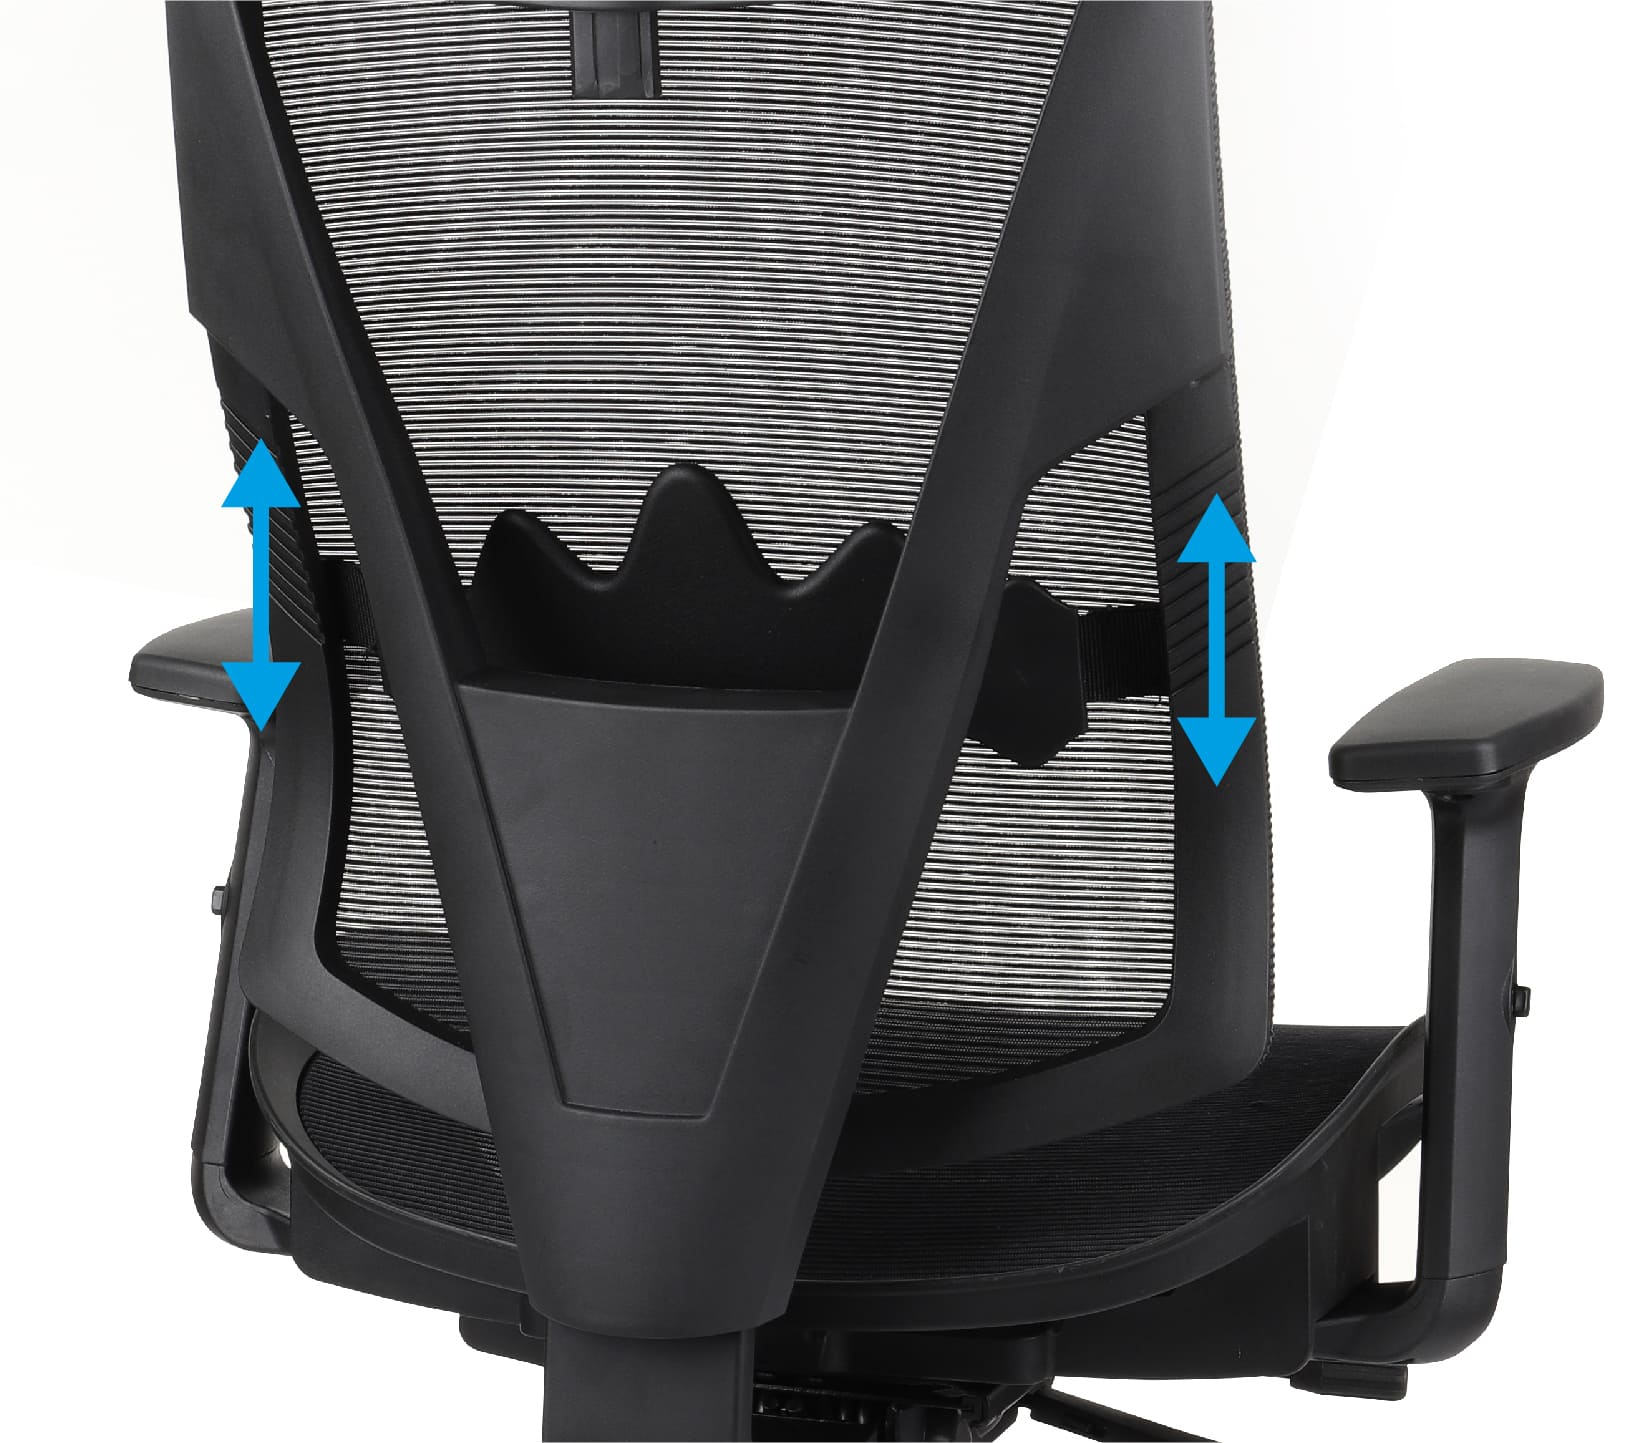 The backrest with the lumbar profile of the FUTURA office chair